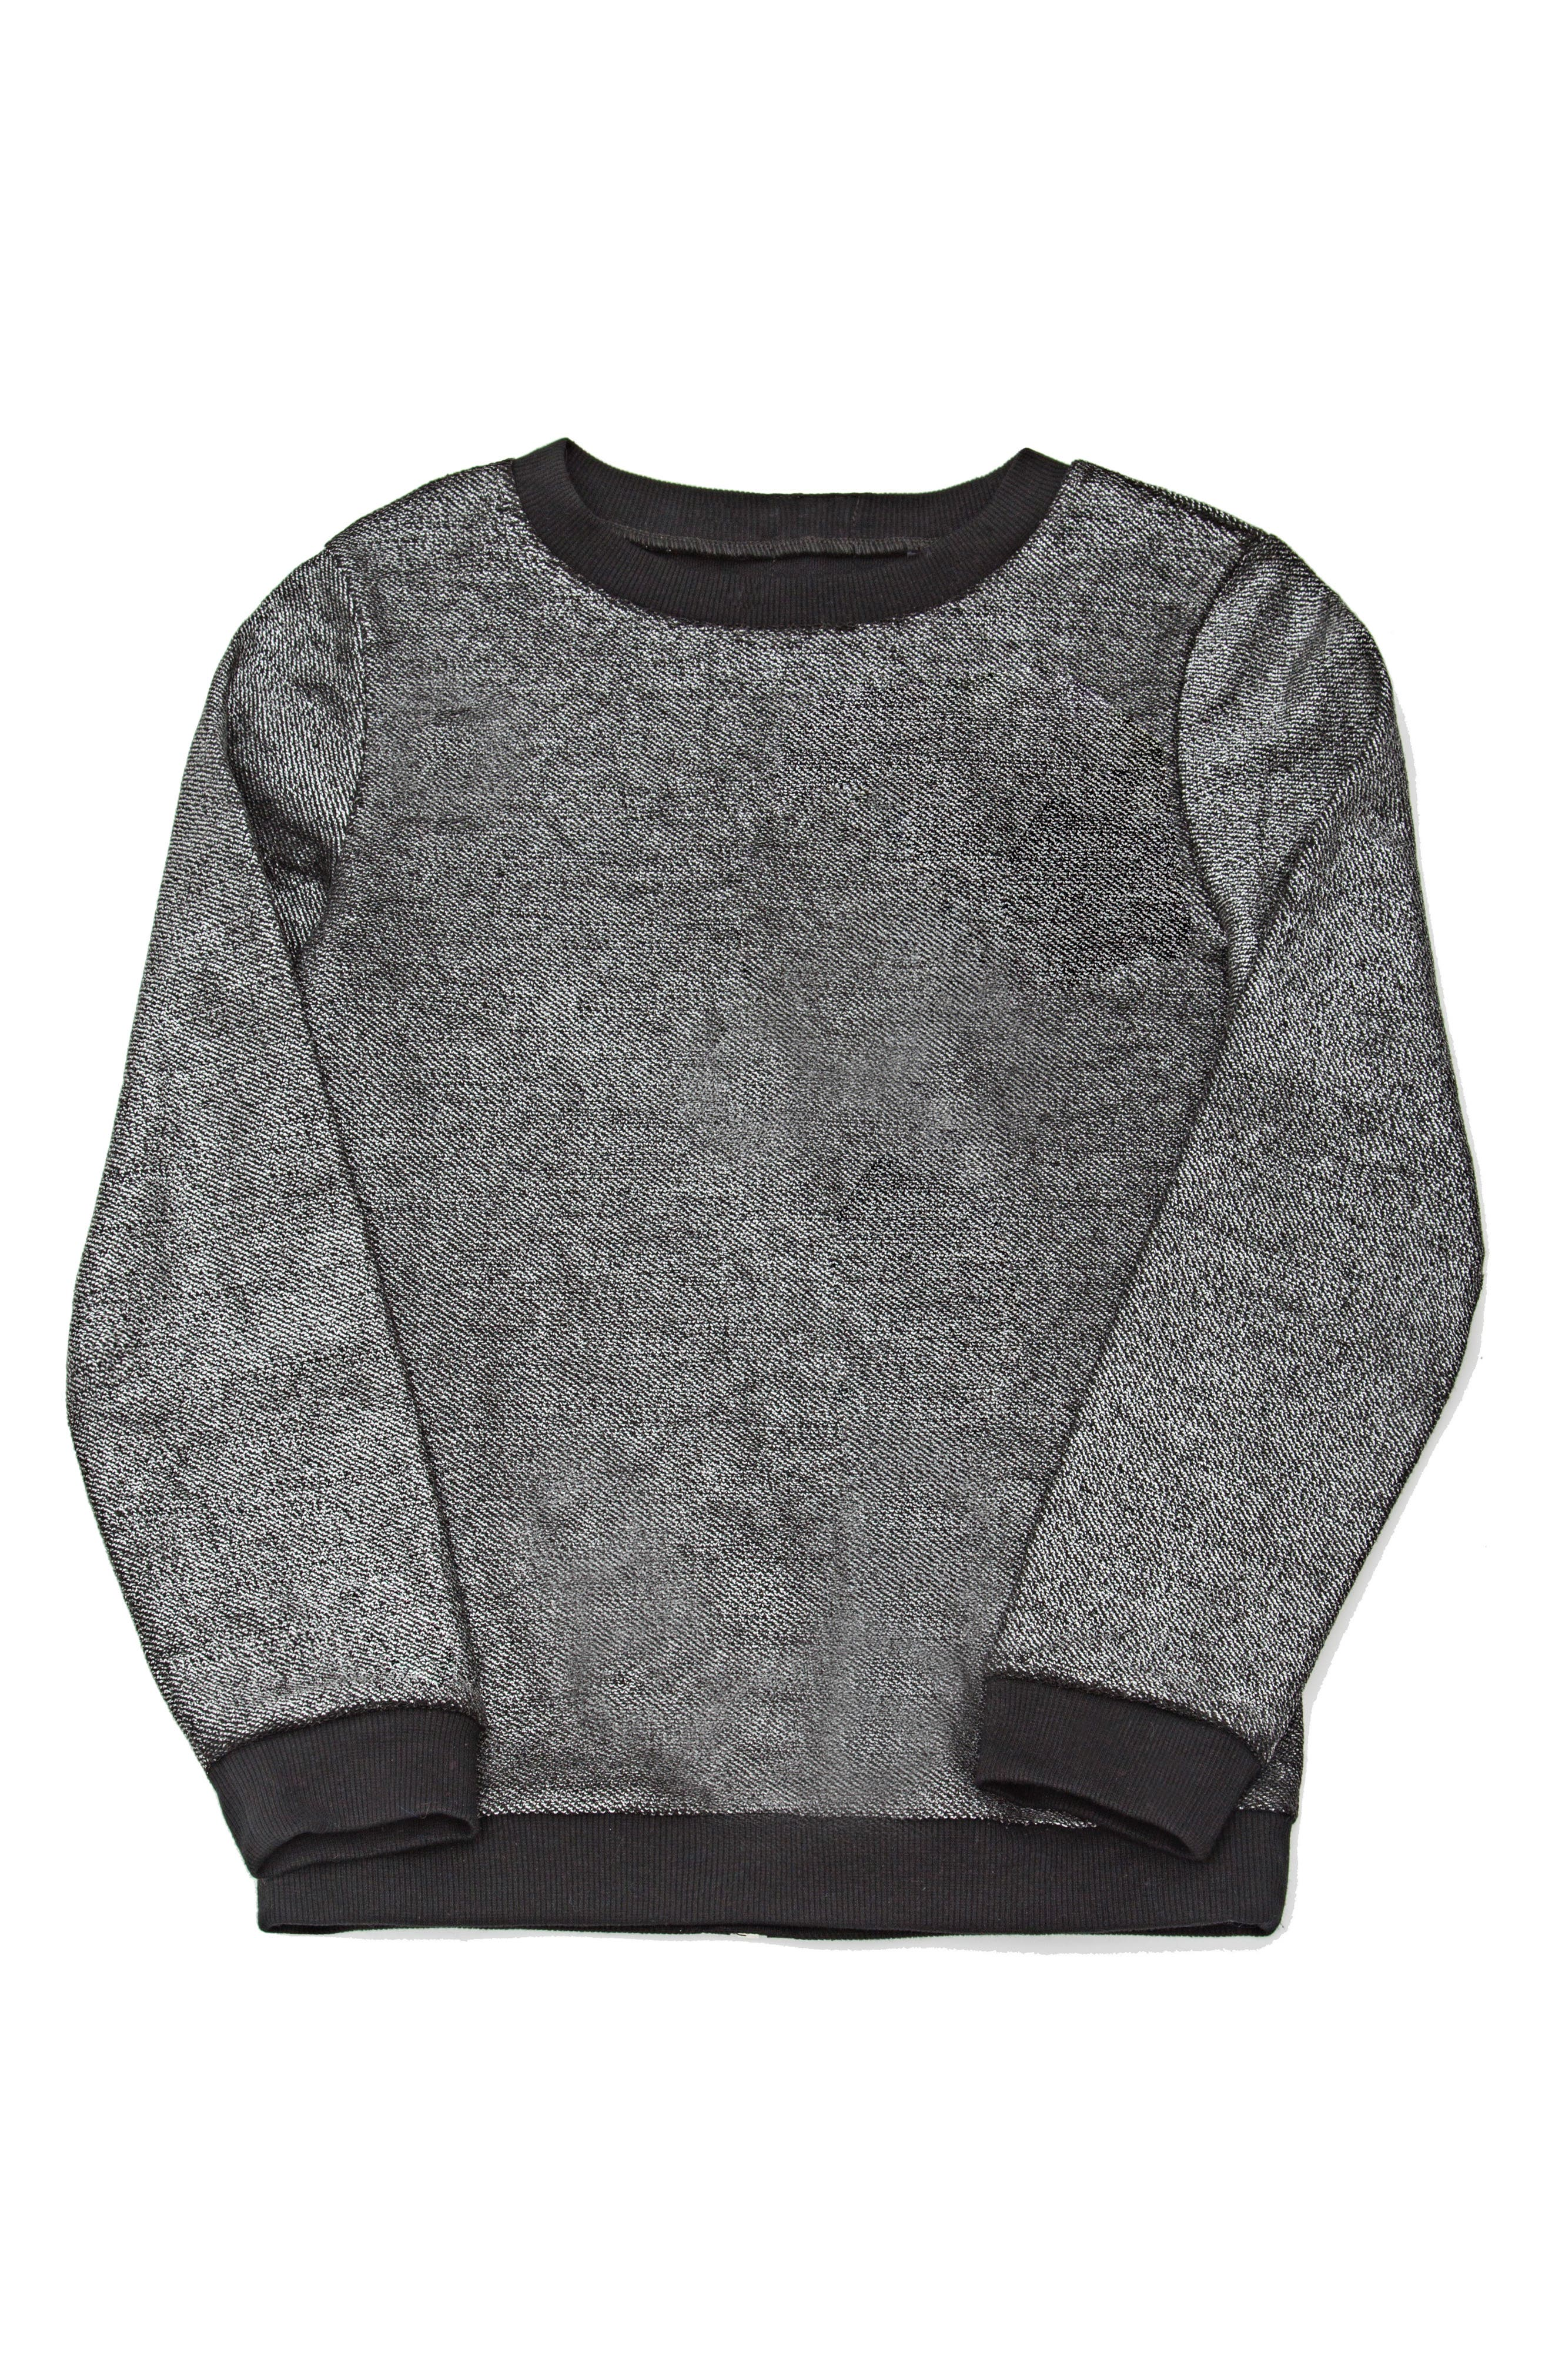 Zip Back Sweatshirt,                             Main thumbnail 1, color,                             001